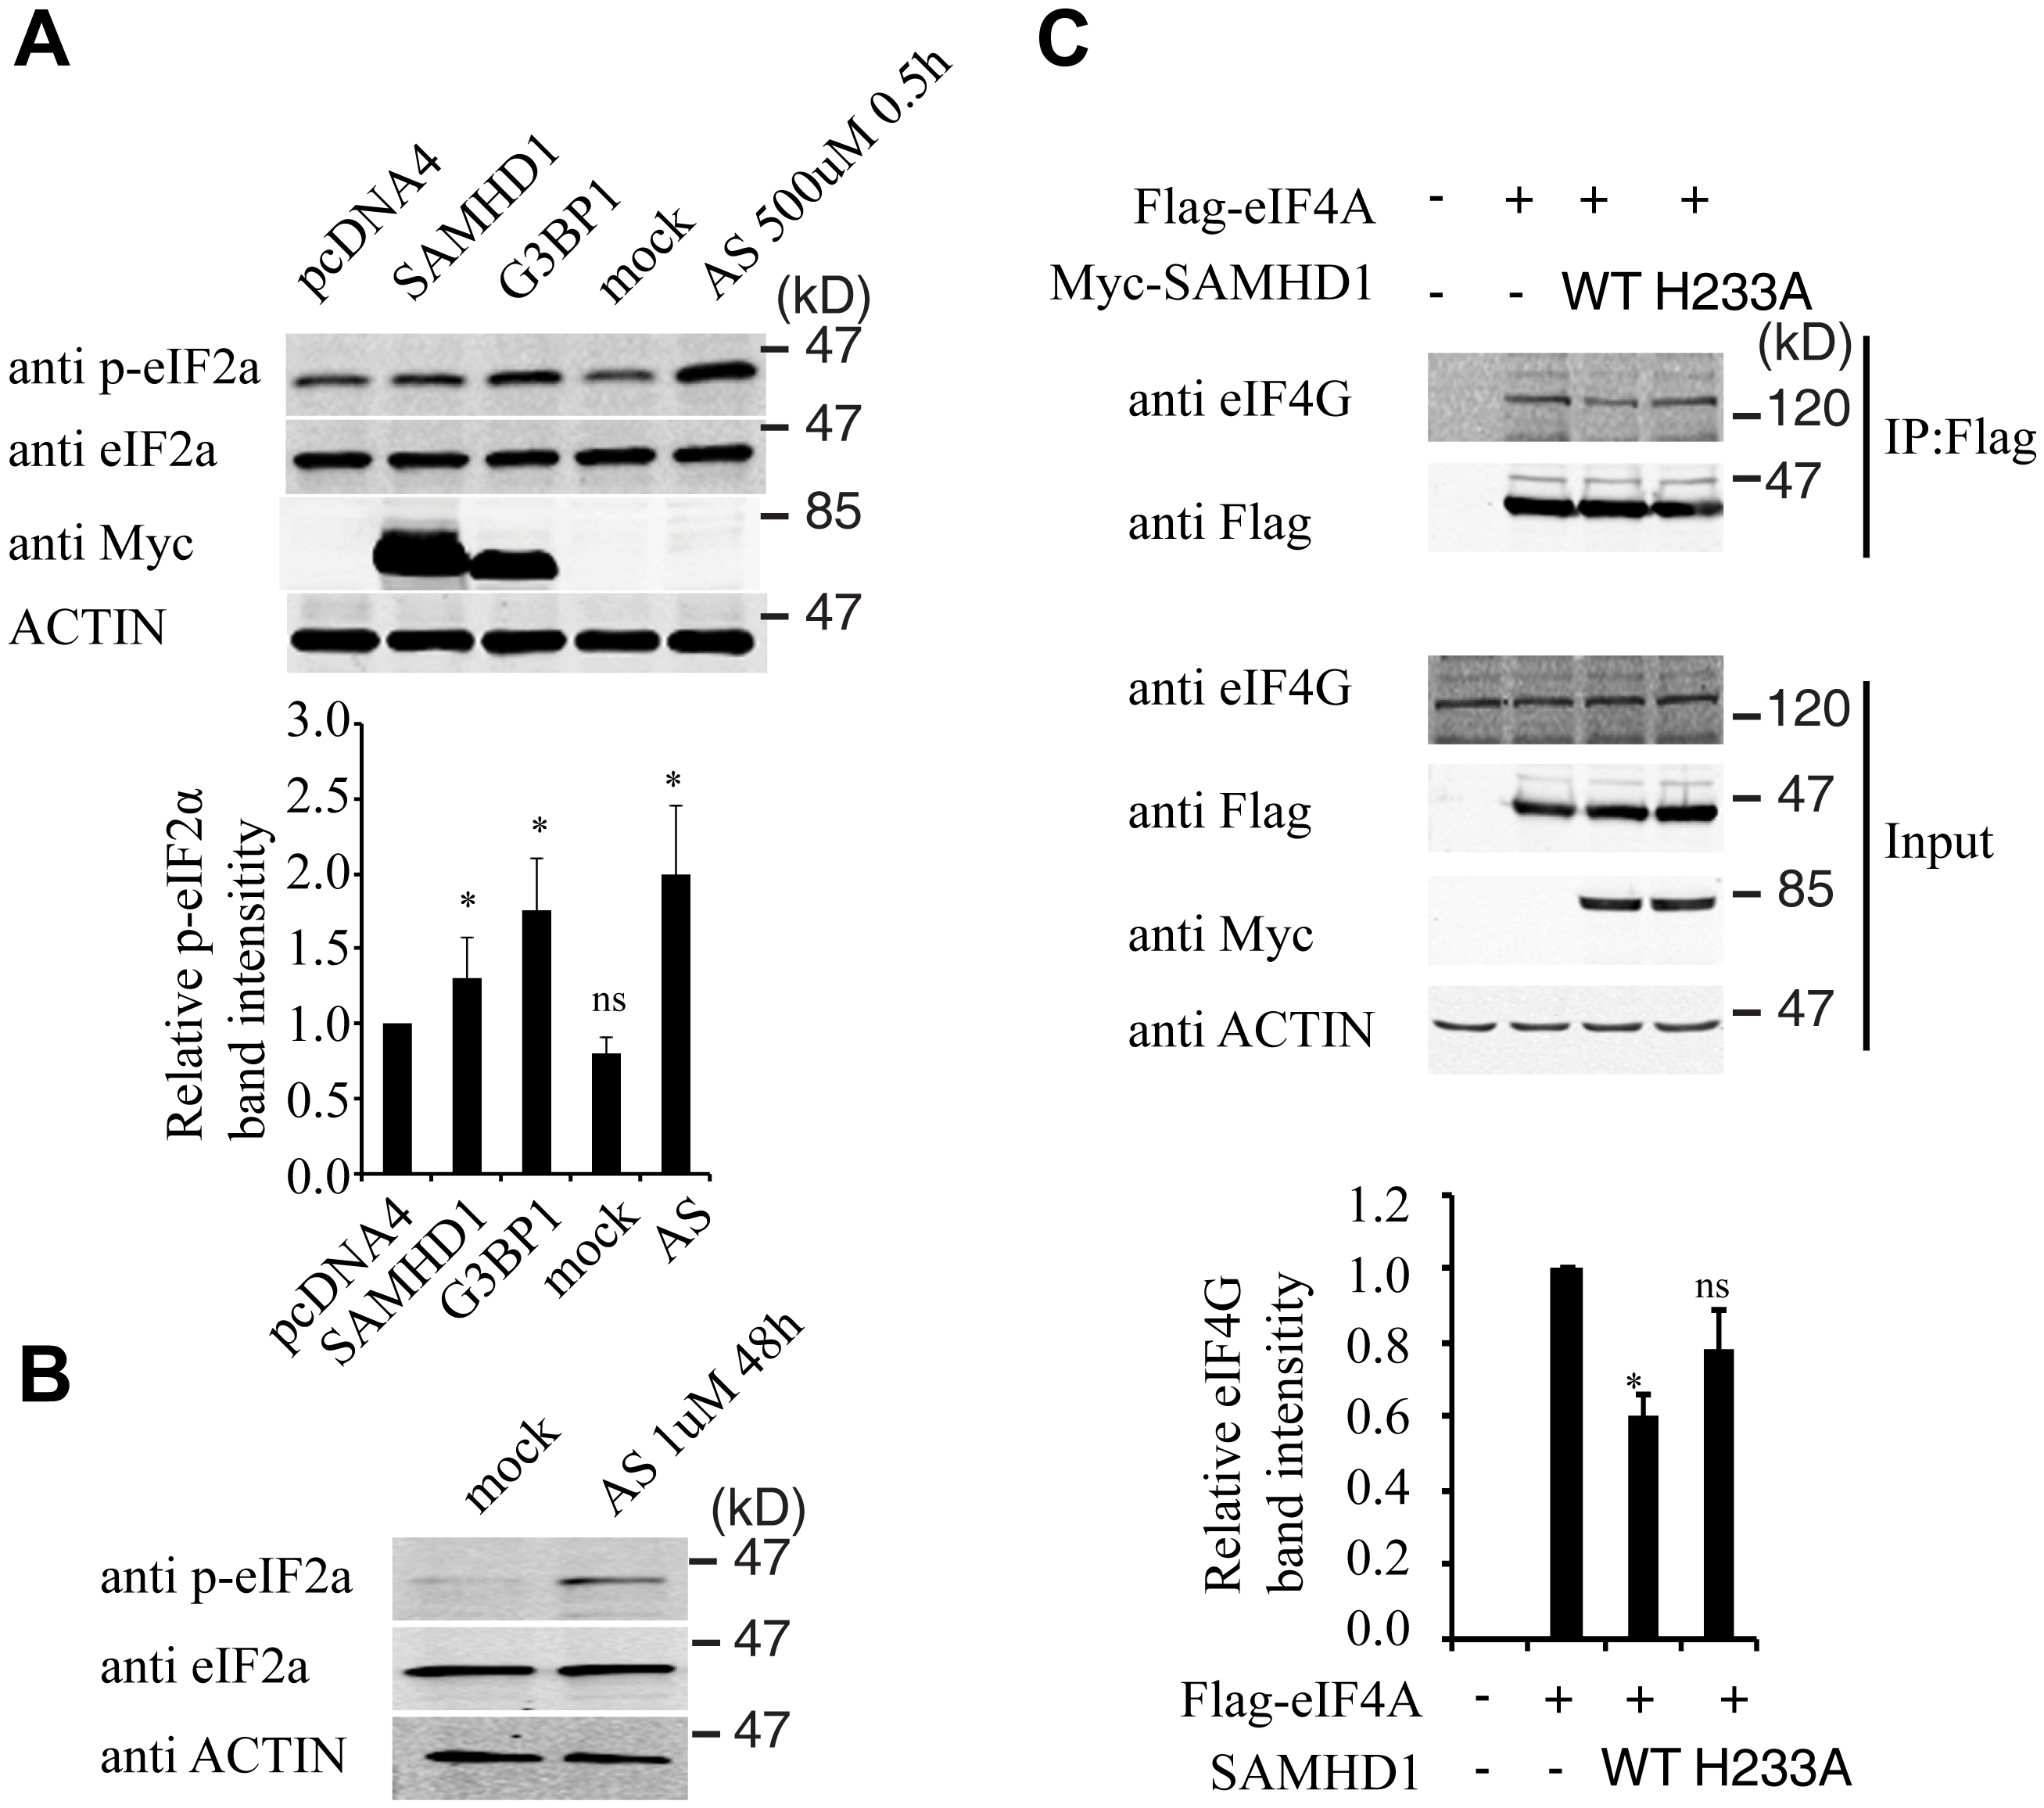 SAMHD1 modulates the phosphorylation of eIF2α and the interaction of eIF4G and eIF4A.